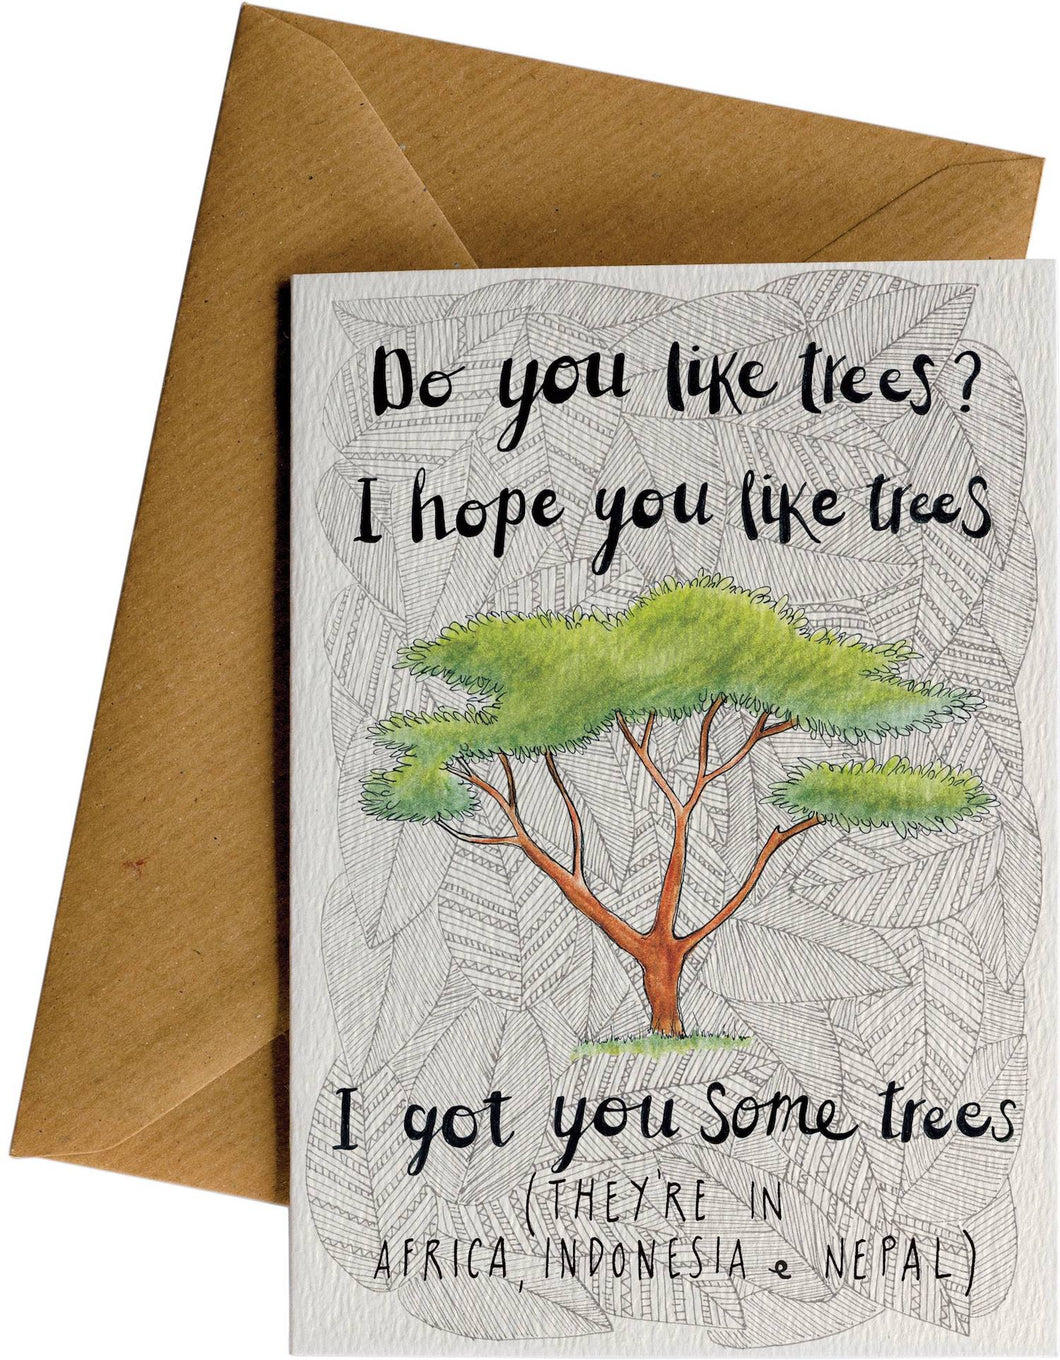 Do you like trees gift card bamwoo bamboo front of bamwoos do you like trees gift card negle